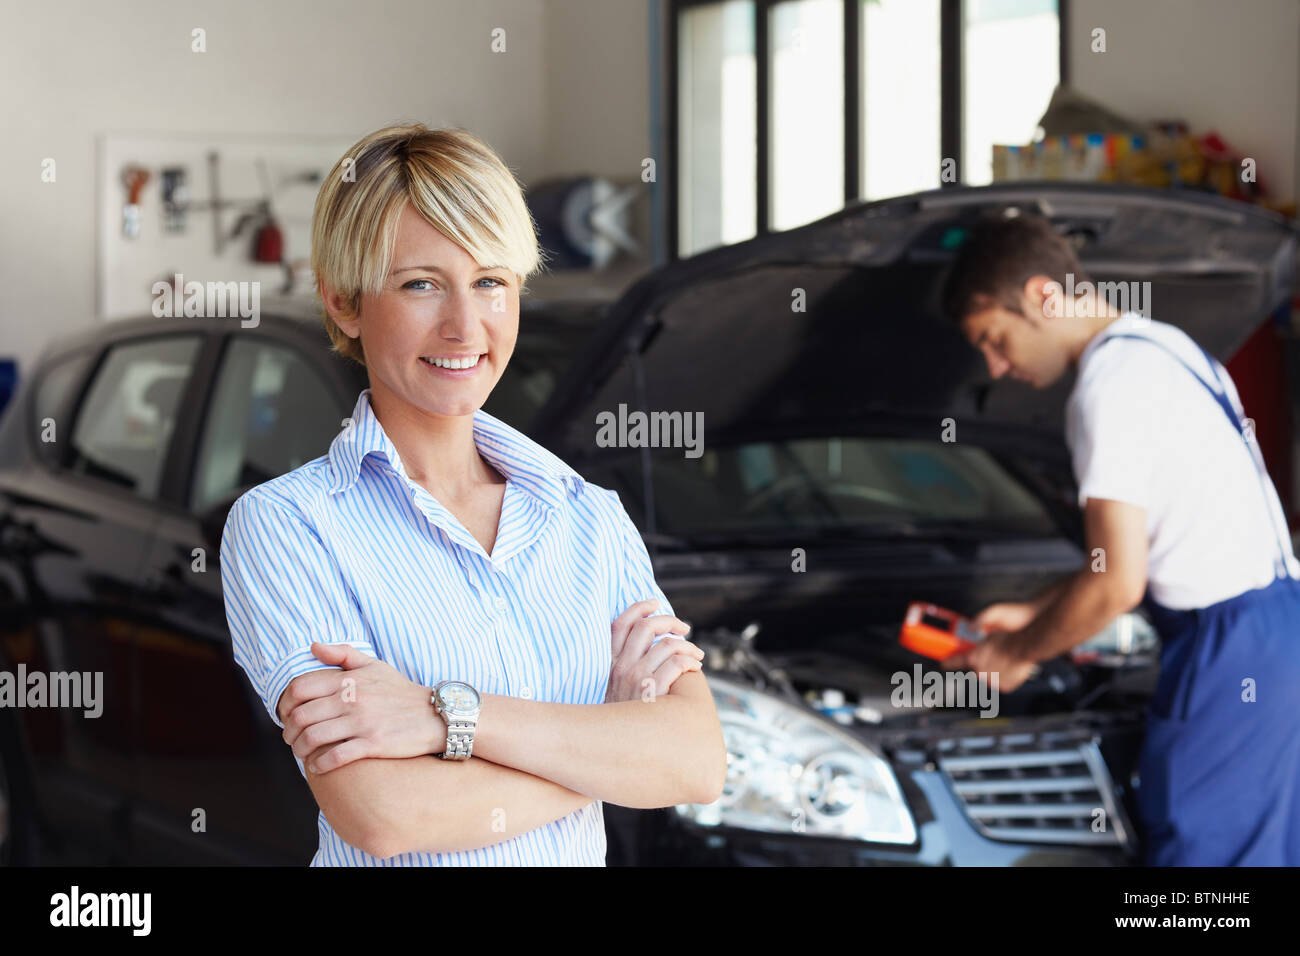 portrait of woman in auto repair shop - Stock Image